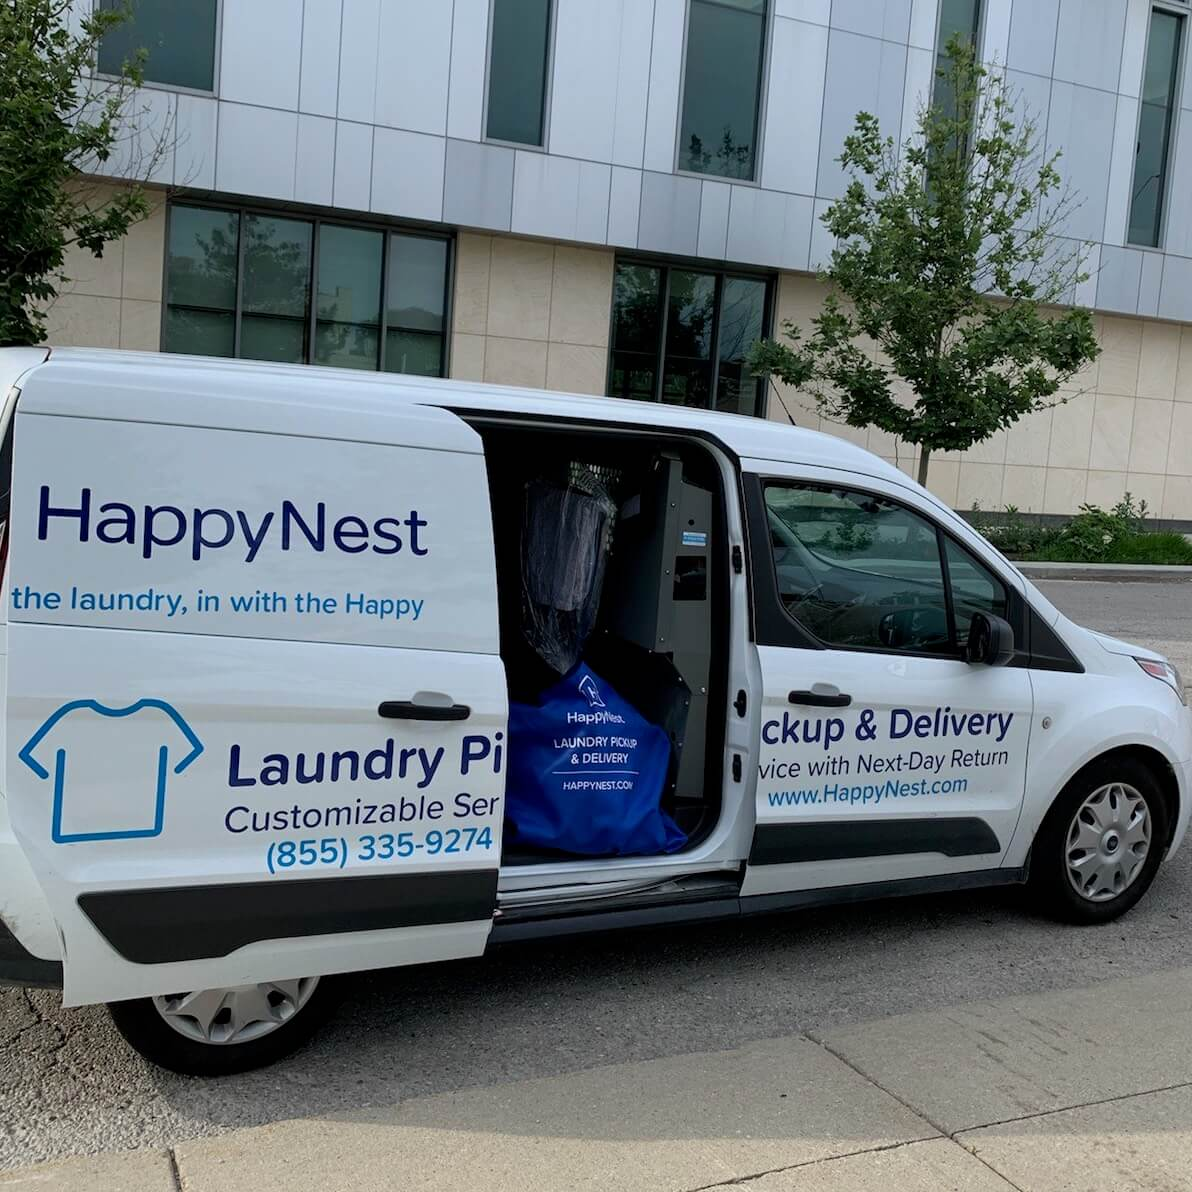 HappyNest Expands Laundry Pickup and Delivery in South Carolina